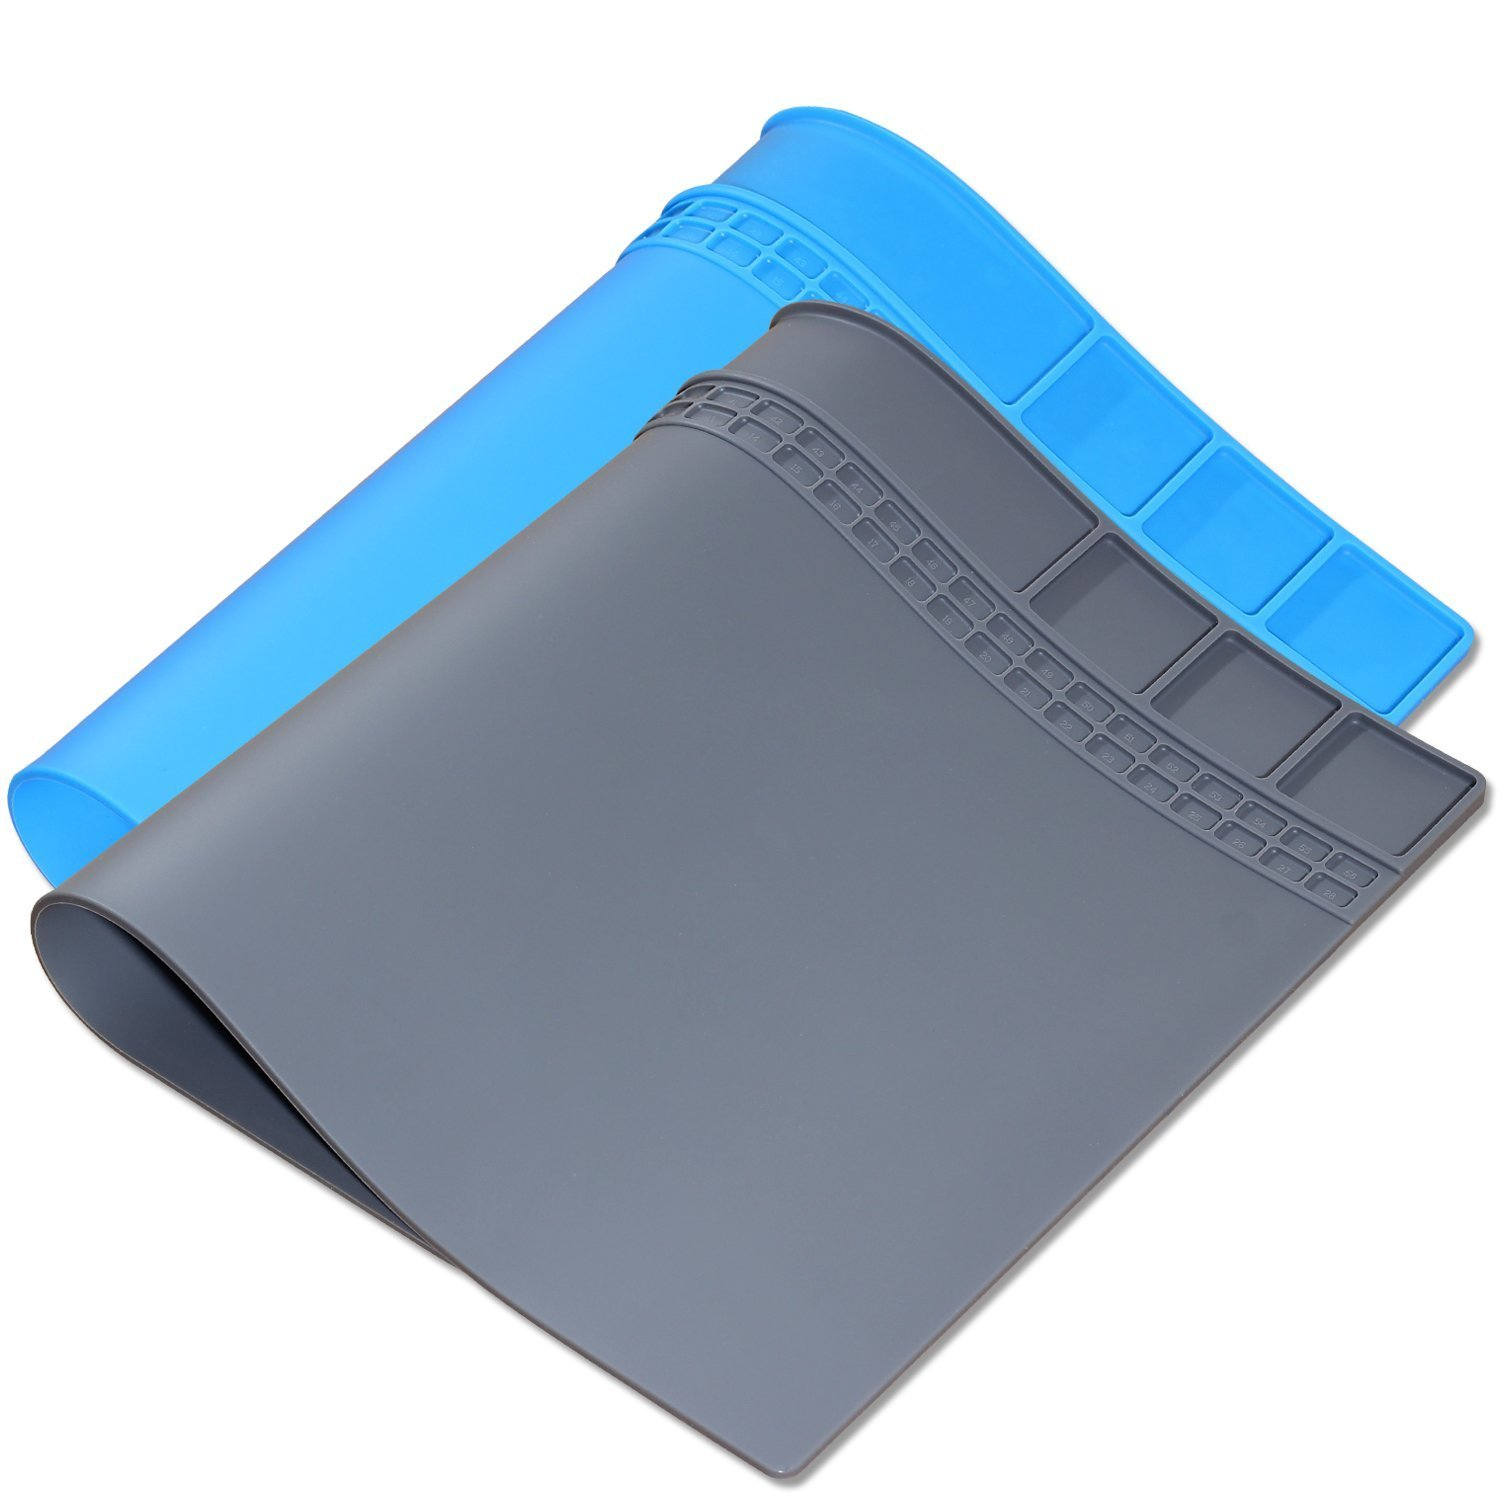 thick cartsave mats sgcity product heat non resistant list green to my nonslip trivet square add silicone mat slip extra